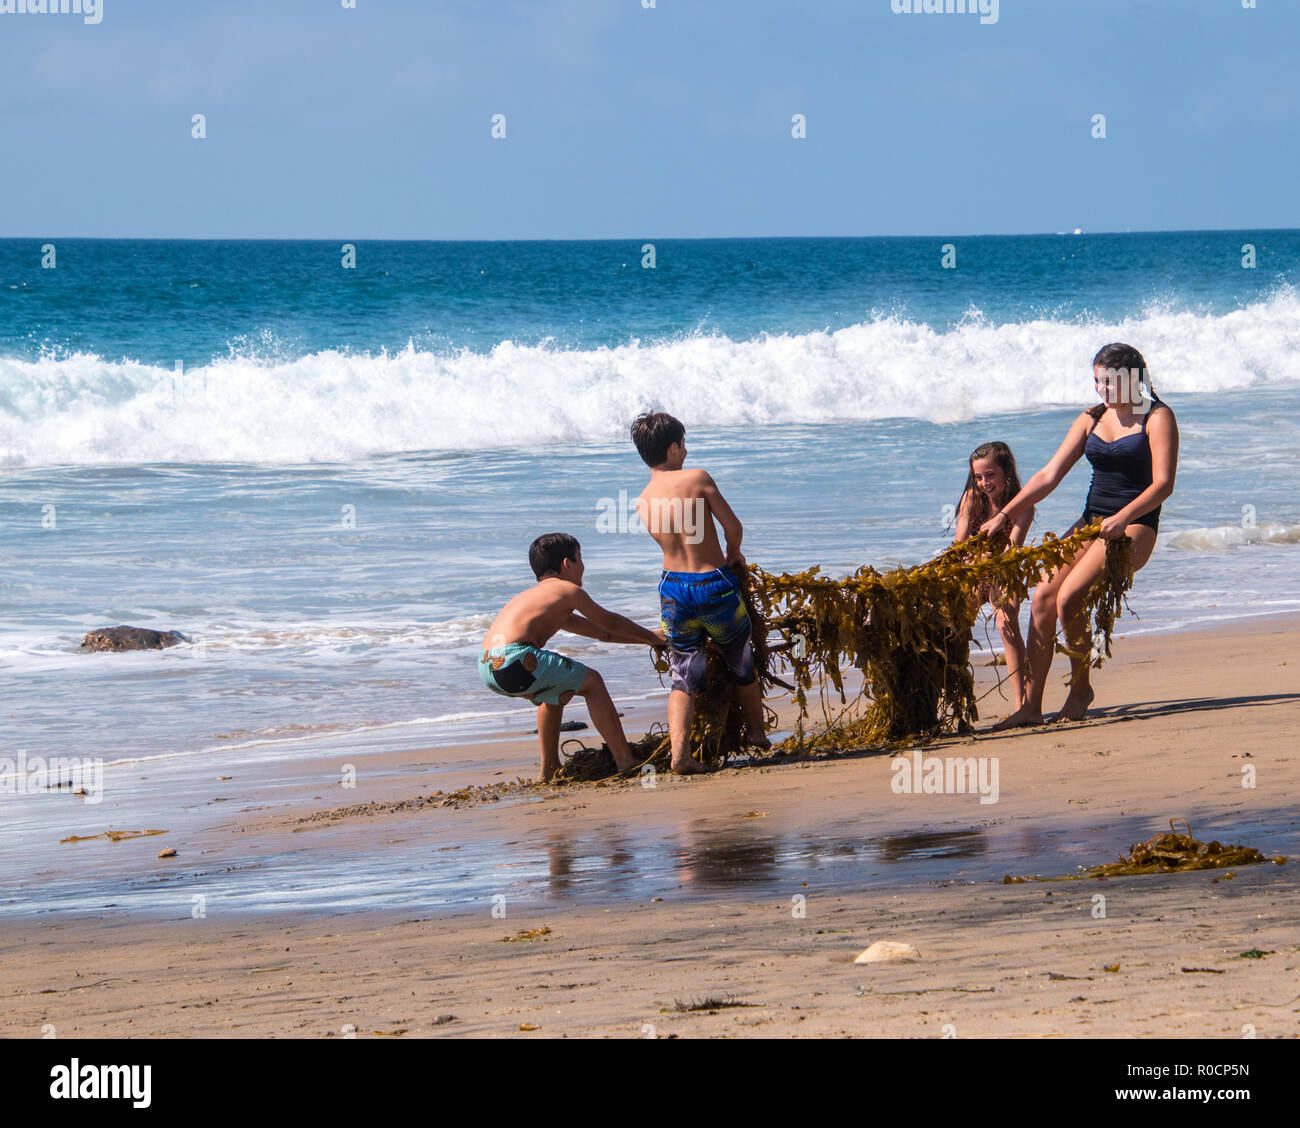 Crystal Cove, California - October 8, 2018: Group of children are seen playing on the beach having fun trying to pull apart a large tangle of kelp and - Stock Image